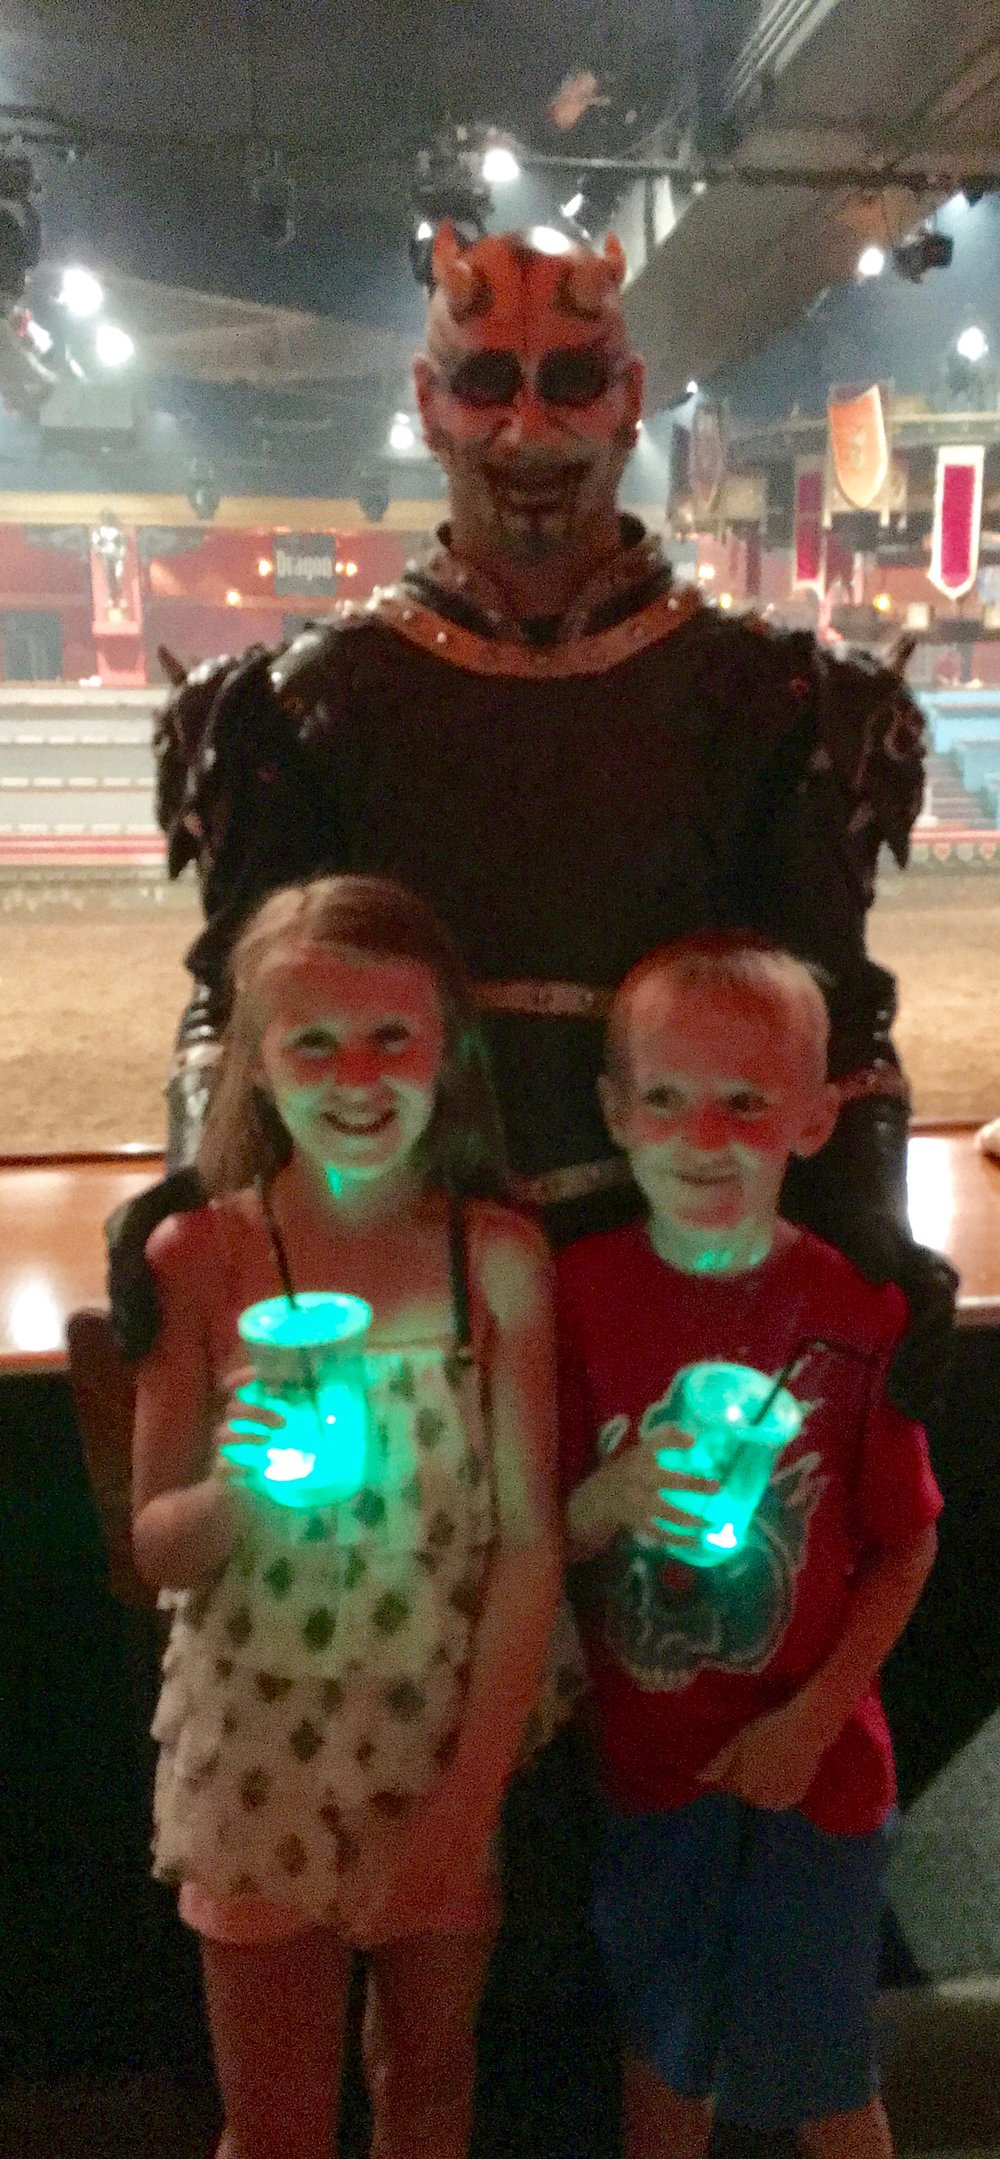 The following night we took them to their first Cirque Du Soleil show The Beatles Love at Mirage.  sc 1 st  Always Packed for Adventure! & Summer 2016- Vegas with Kids: Shows and Activities u2014 Always Packed ...